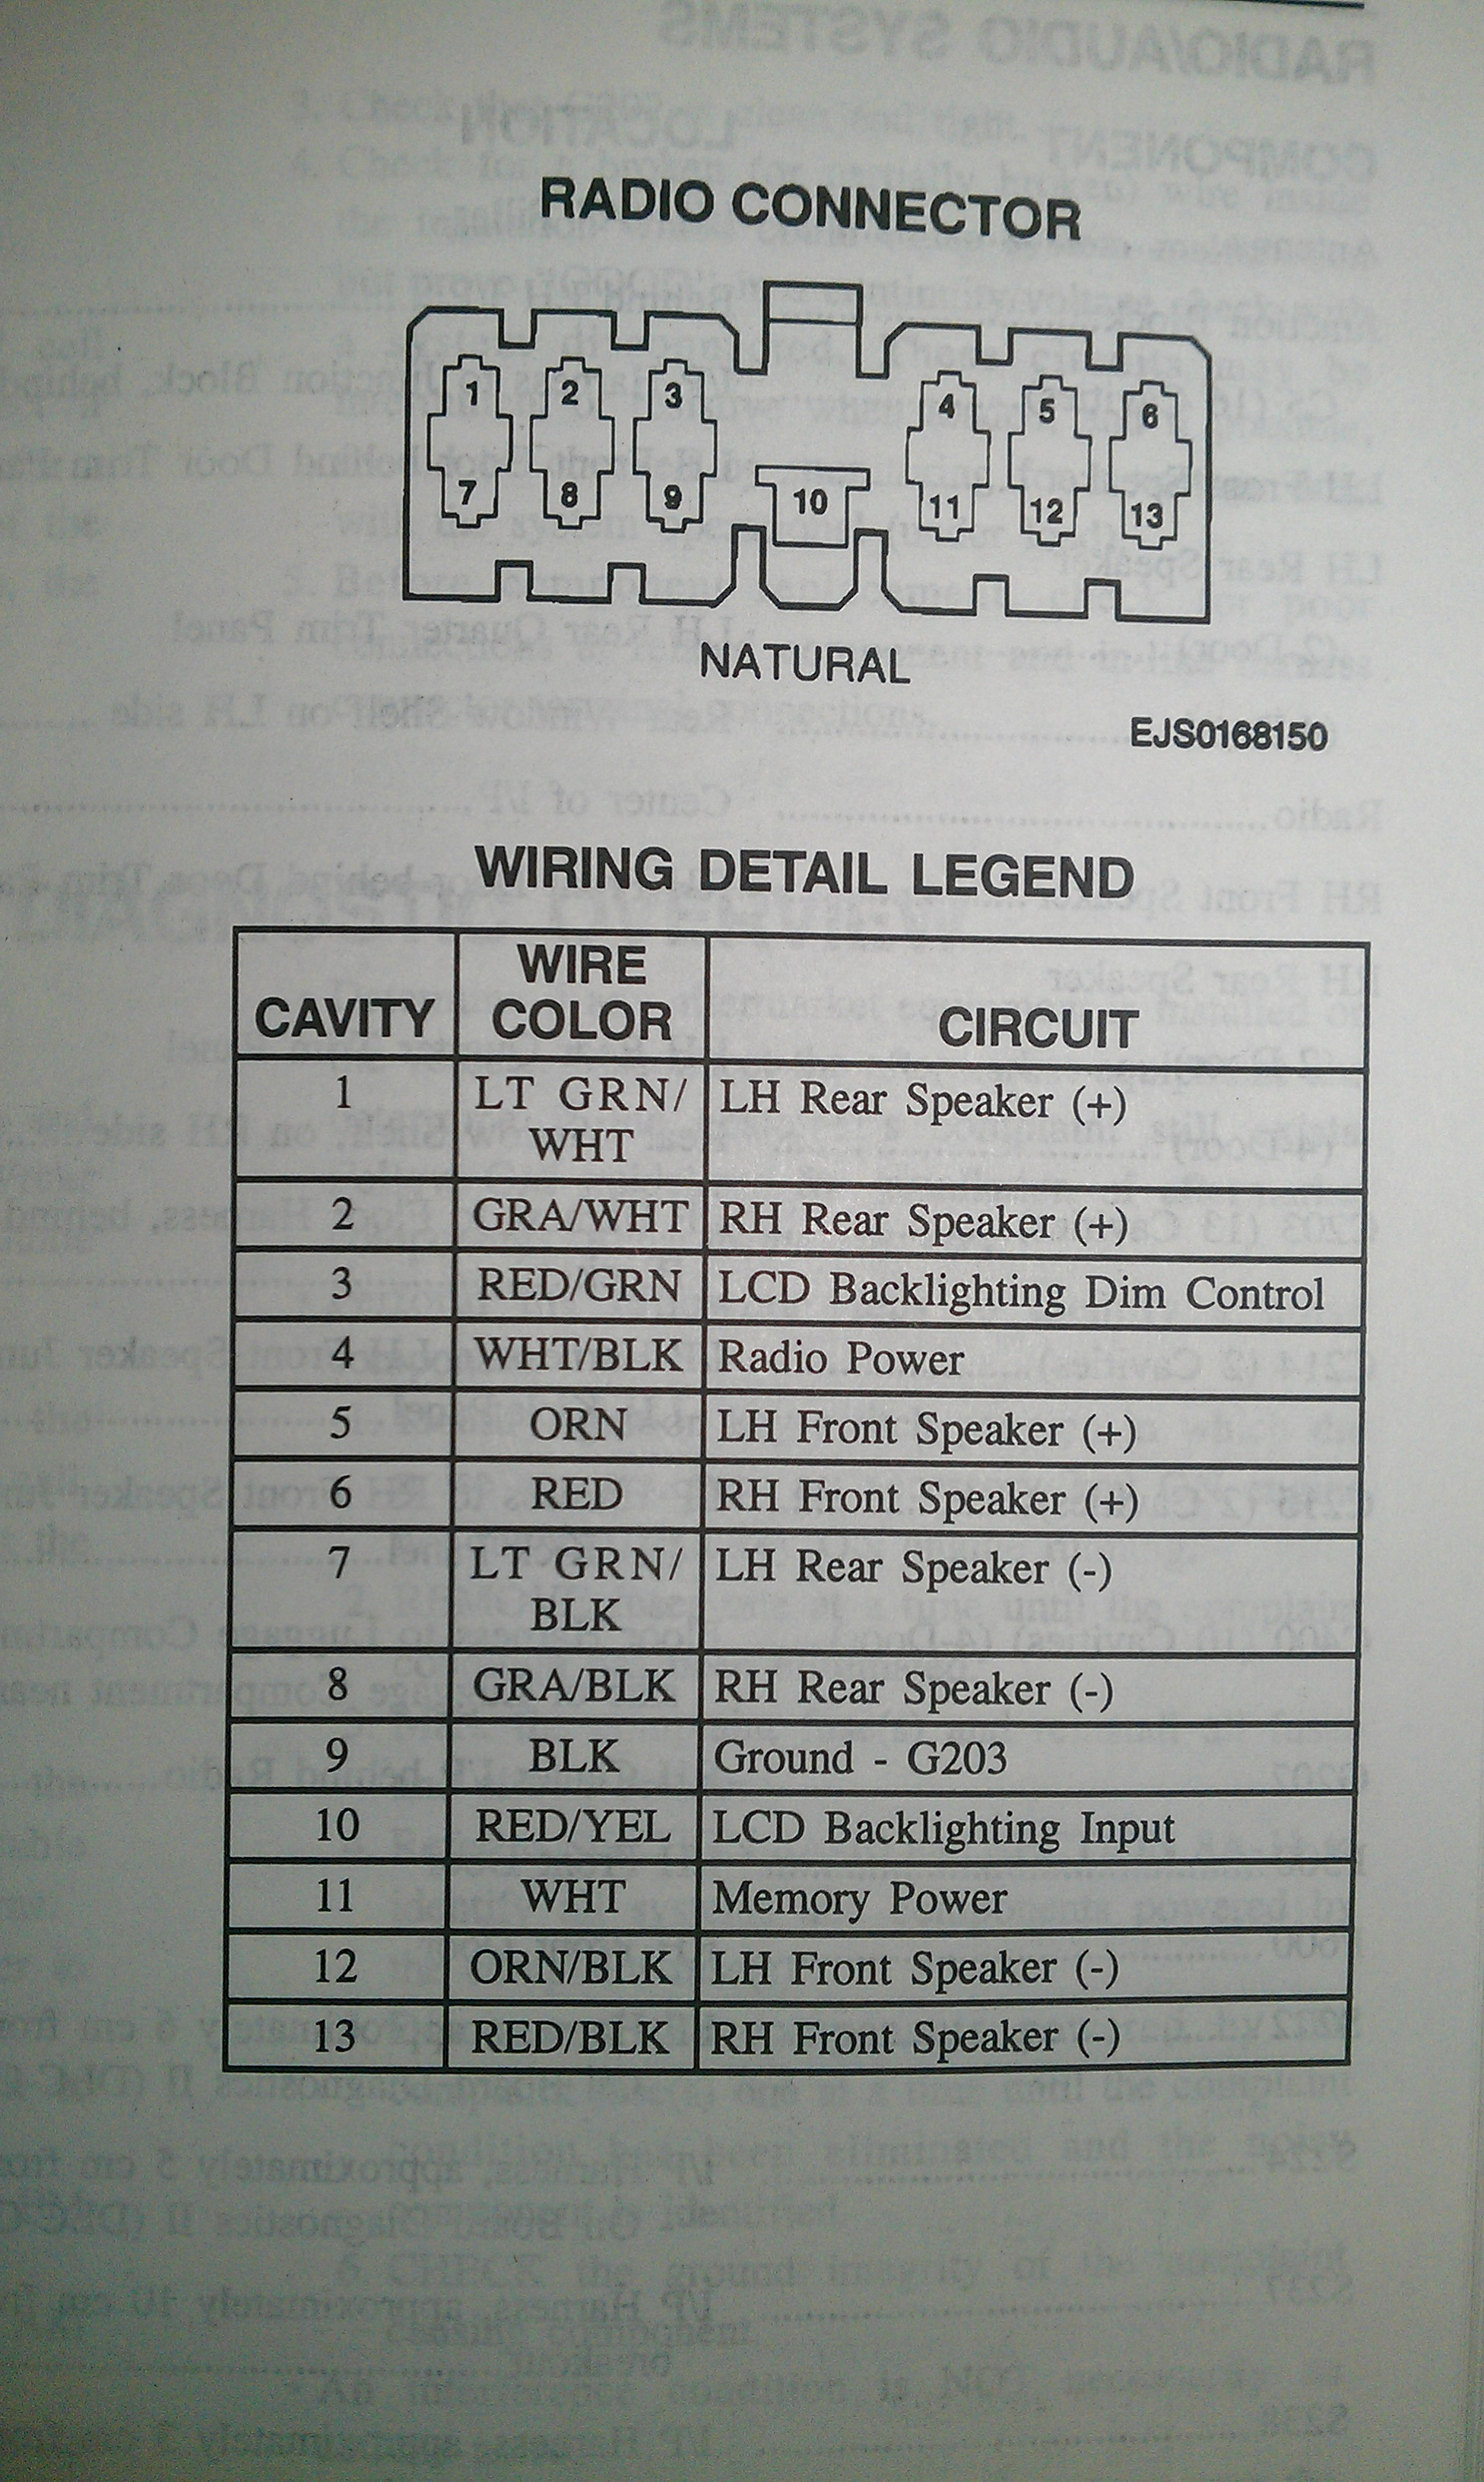 10788004324_6f73ce0165_o radio wiring 2000 chevy metro radio wiring diagram at cos-gaming.co